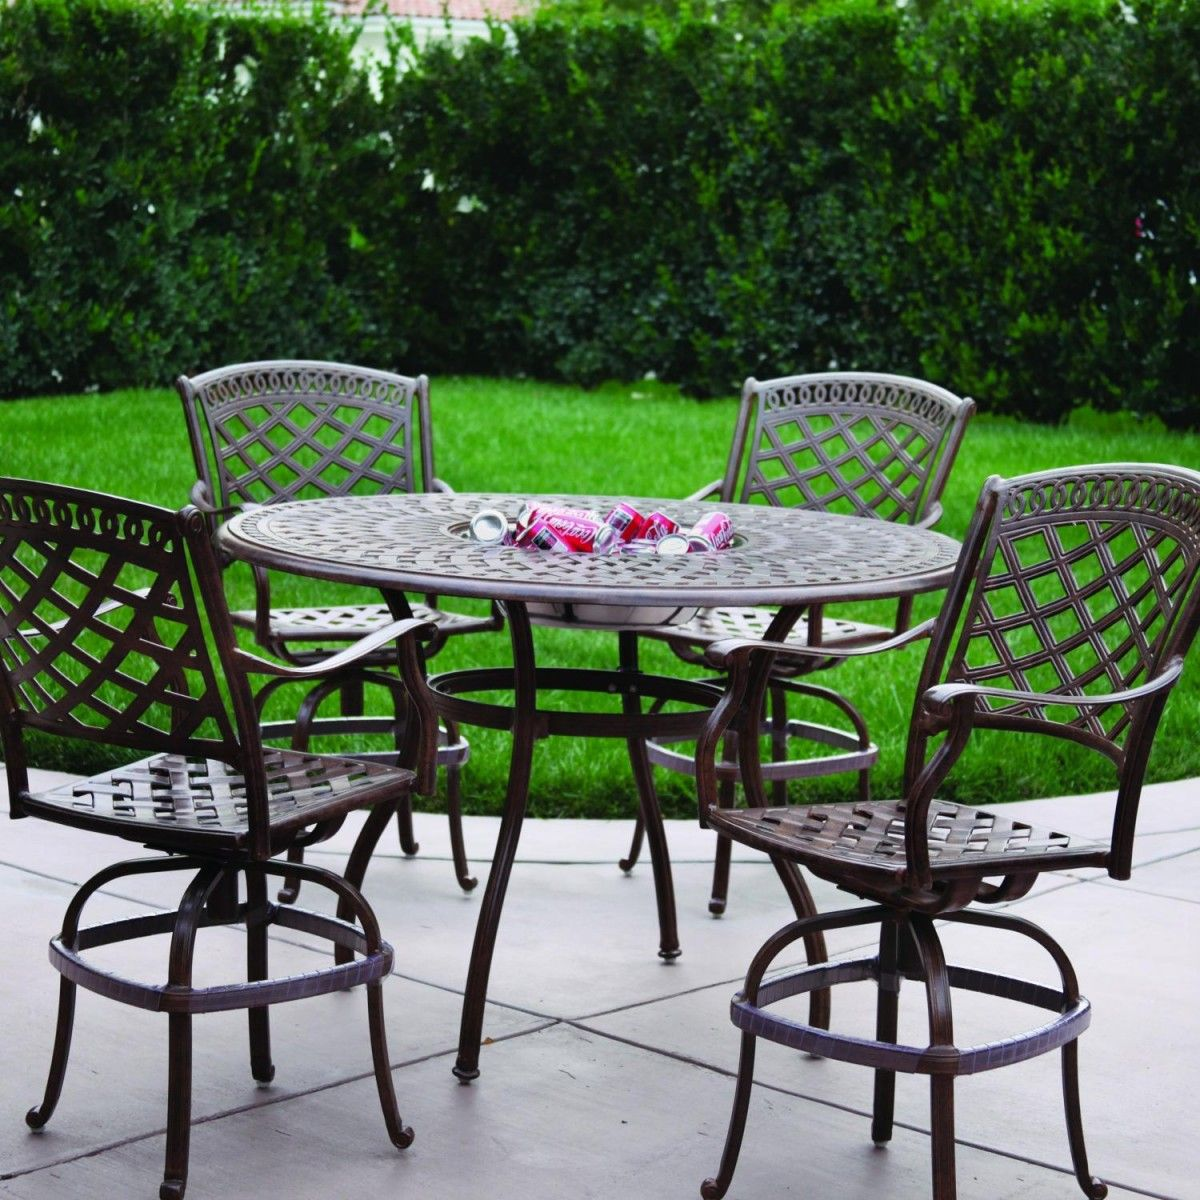 Bar Height Patio Furniture Lowes Bar Height Patio Furniture Outdoor Patio Bar Sets Outdoor Bar Height Table